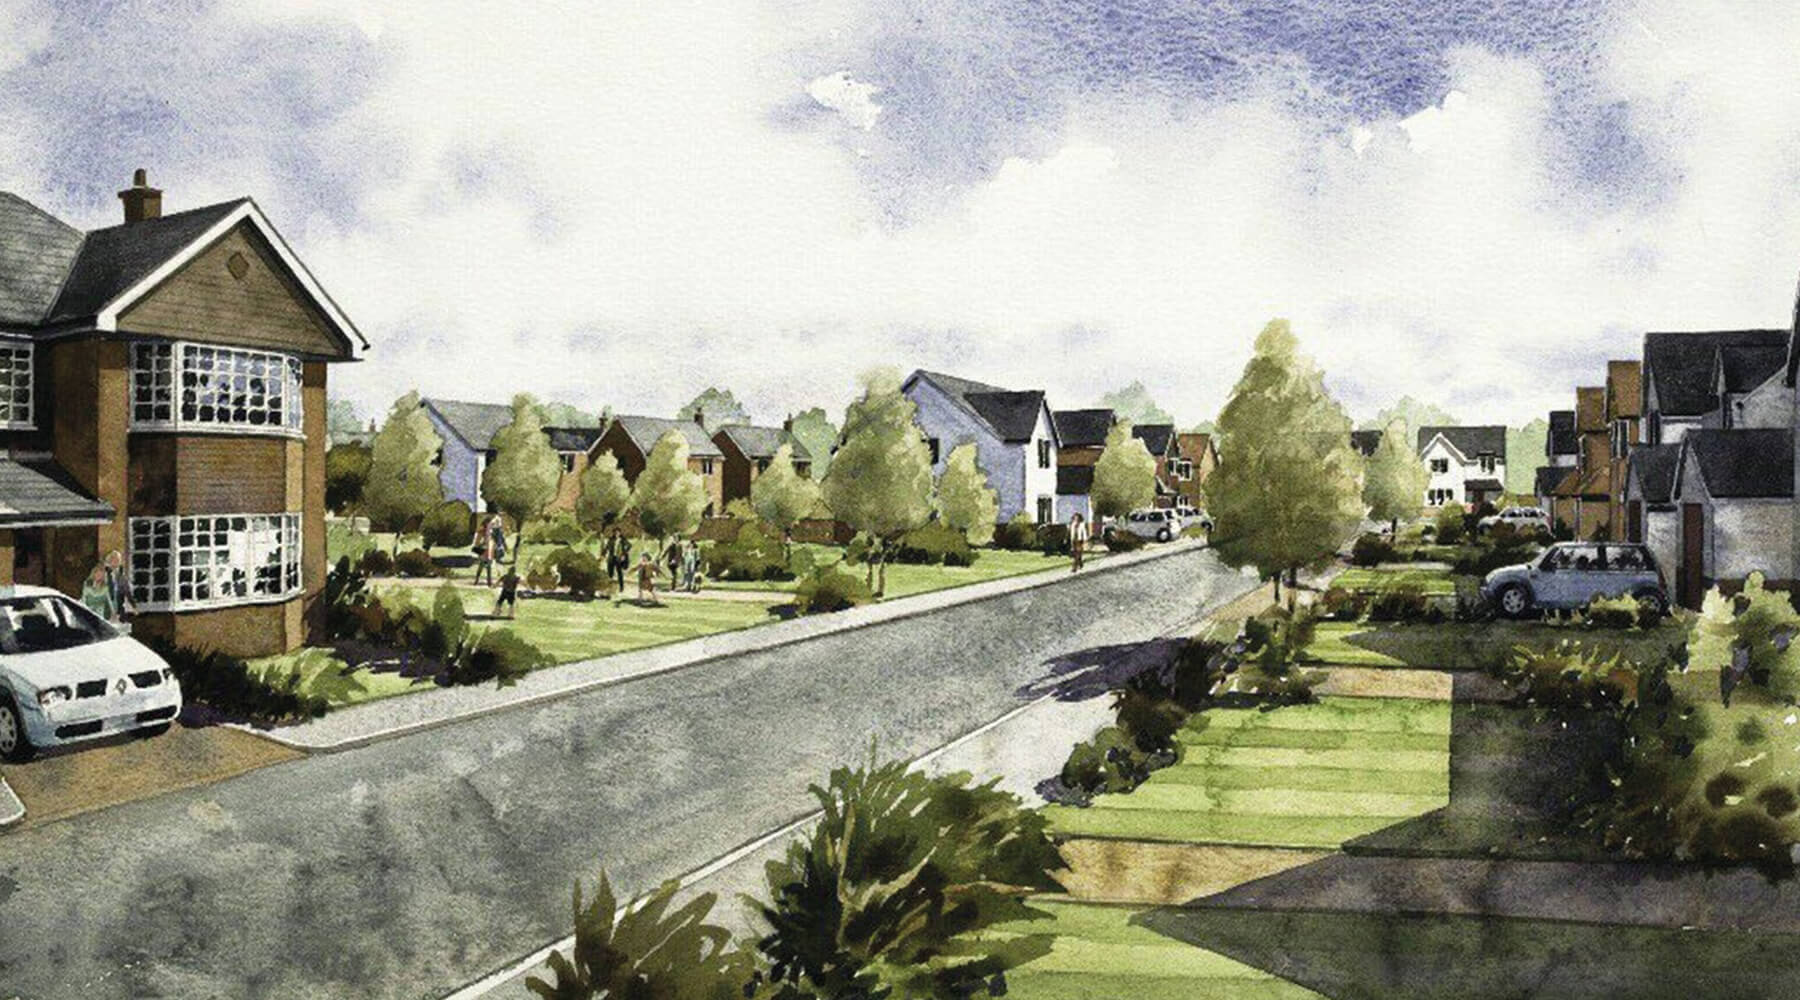 NESCOT's housing plans approved